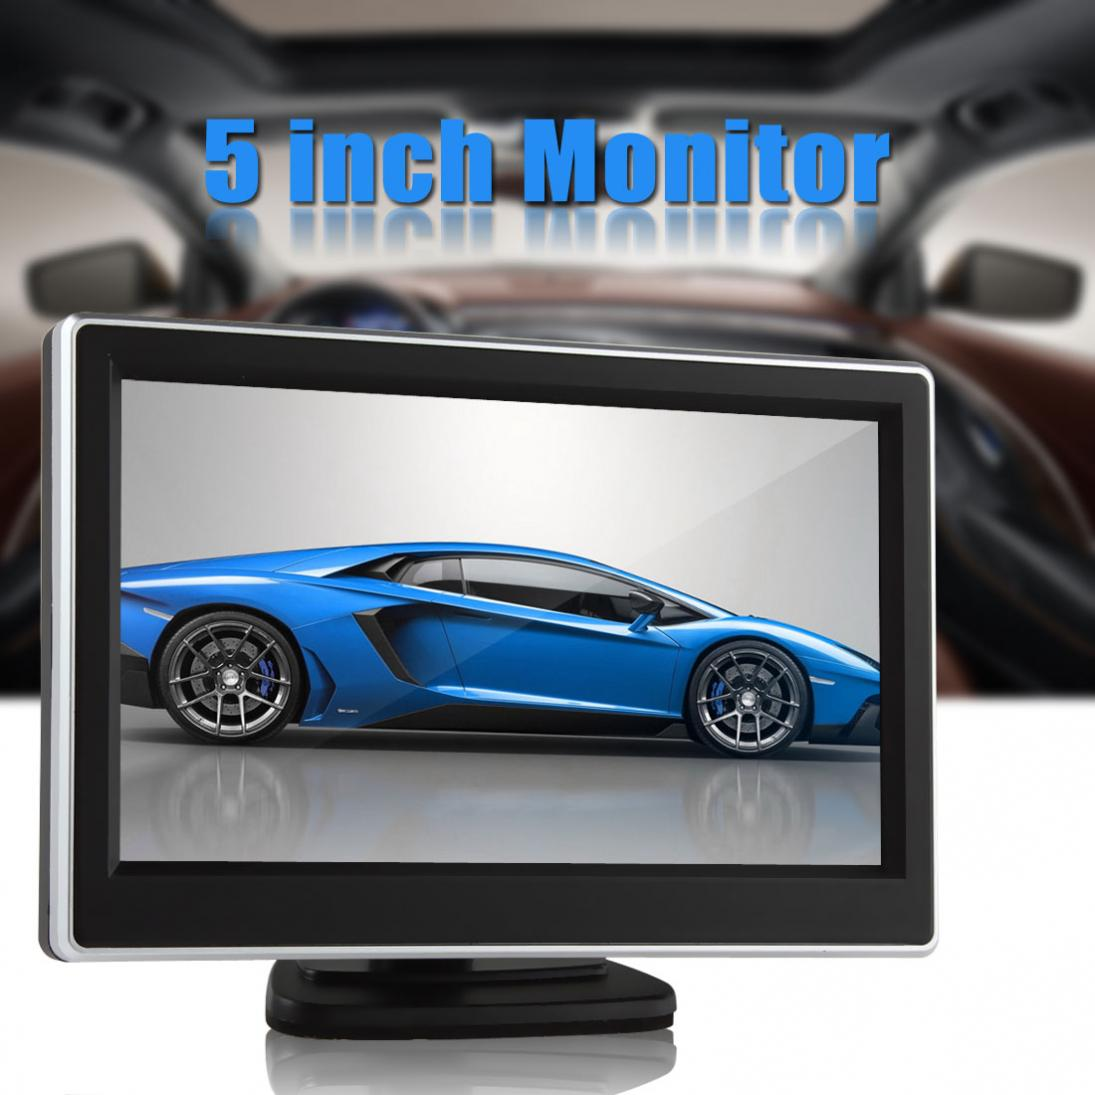 5 Inch TFT LCD Digital Panel Color screen Car Rear View Monitor with 2 Video Input Car Reversing Camera for VCD/DVD/GPS/Camera